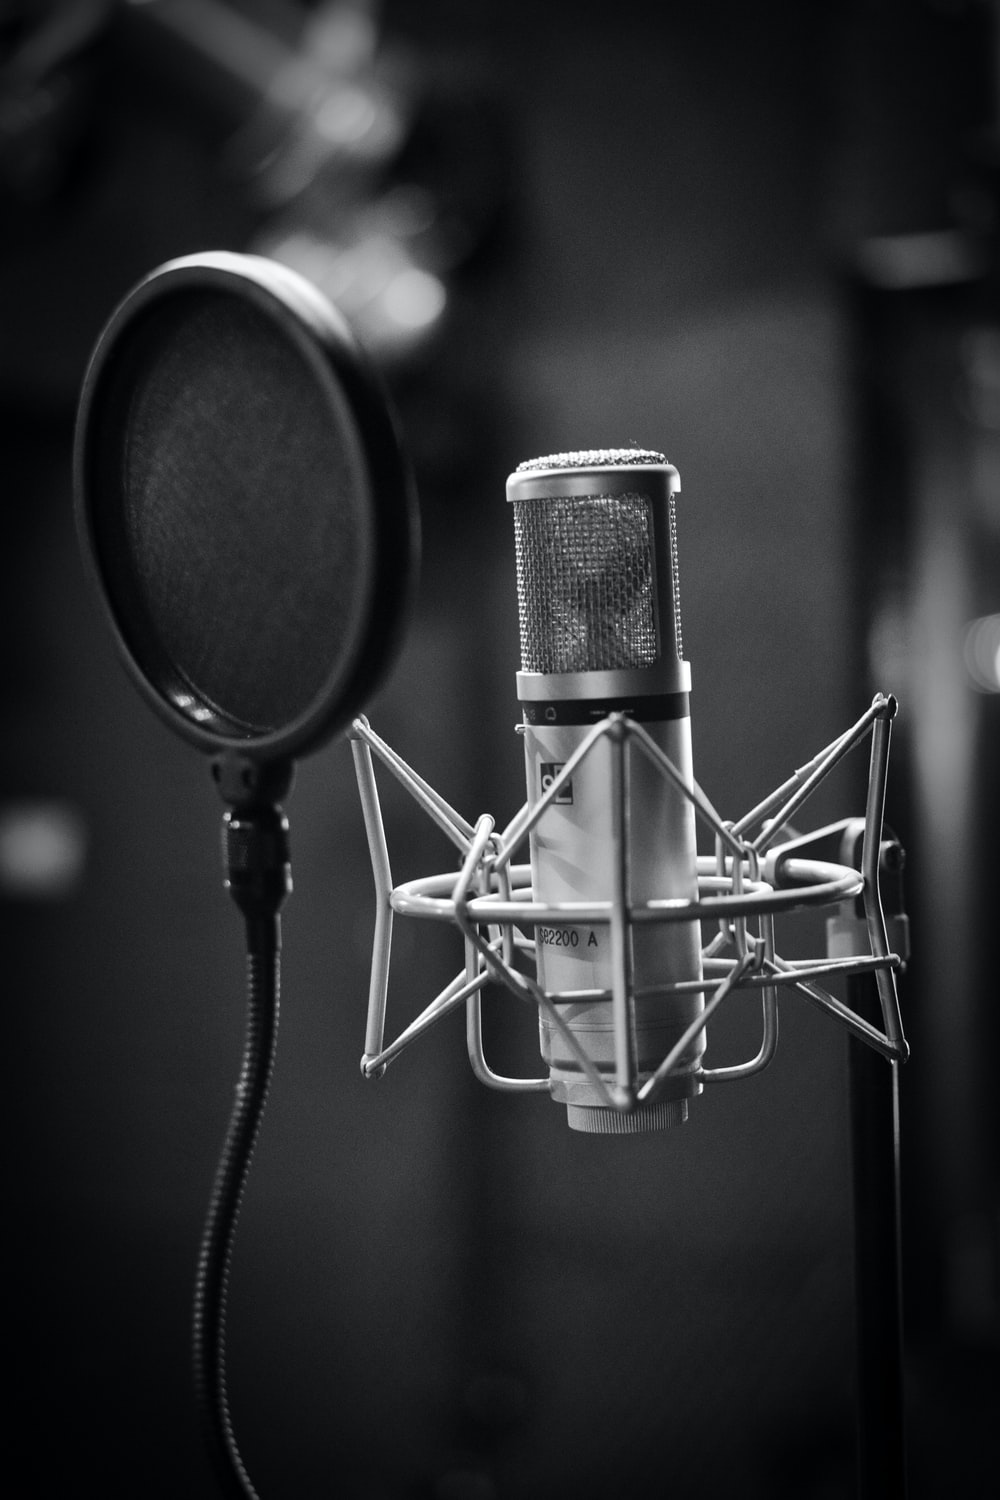 500 Recording Studio Pictures Download Free Images On